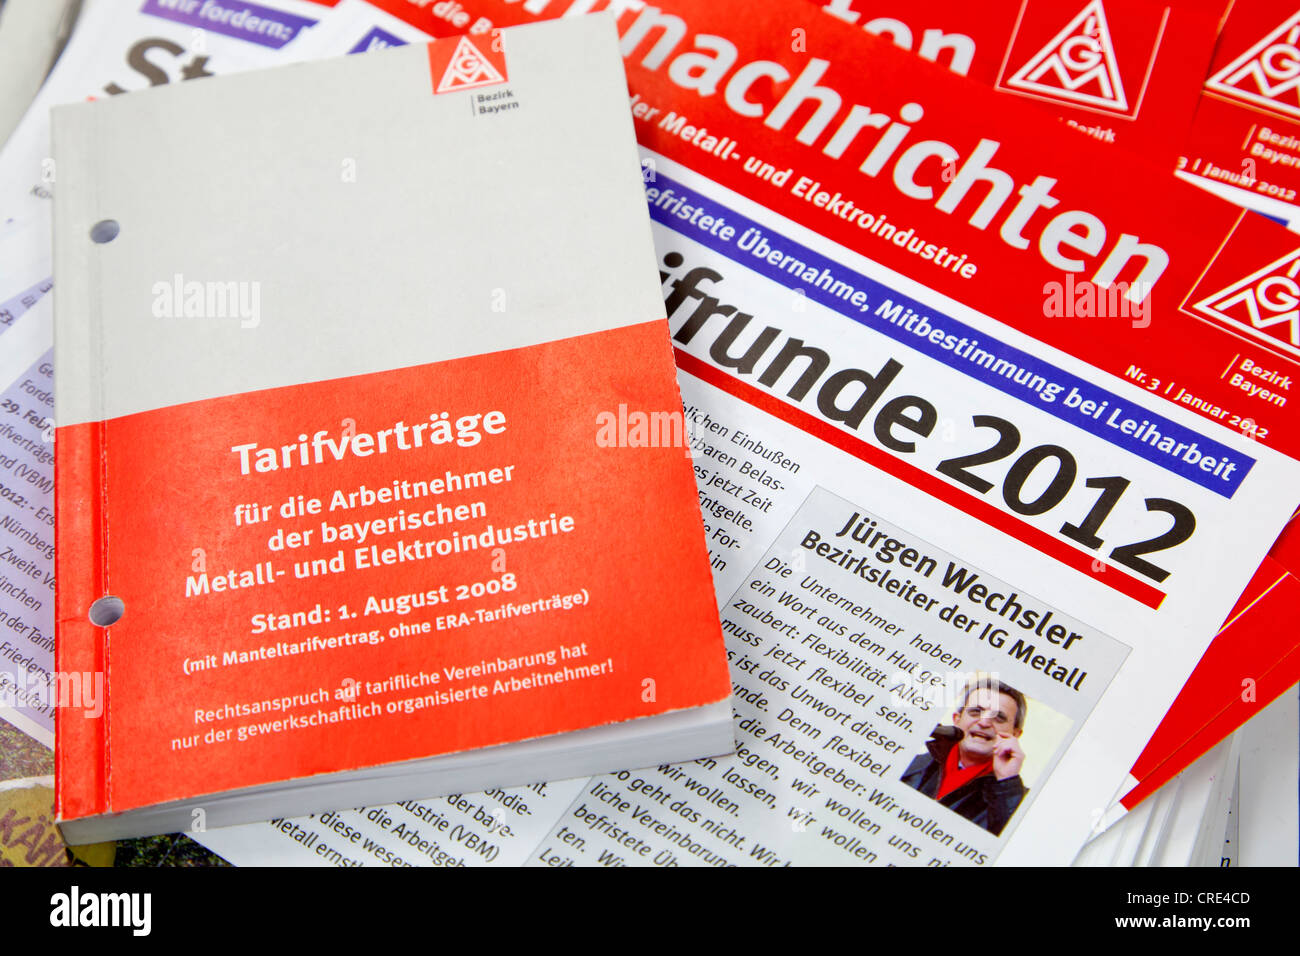 Manual of collective agreements for employees of the Bavarian metal and electrical industry from the IG Metall trade - Stock Image